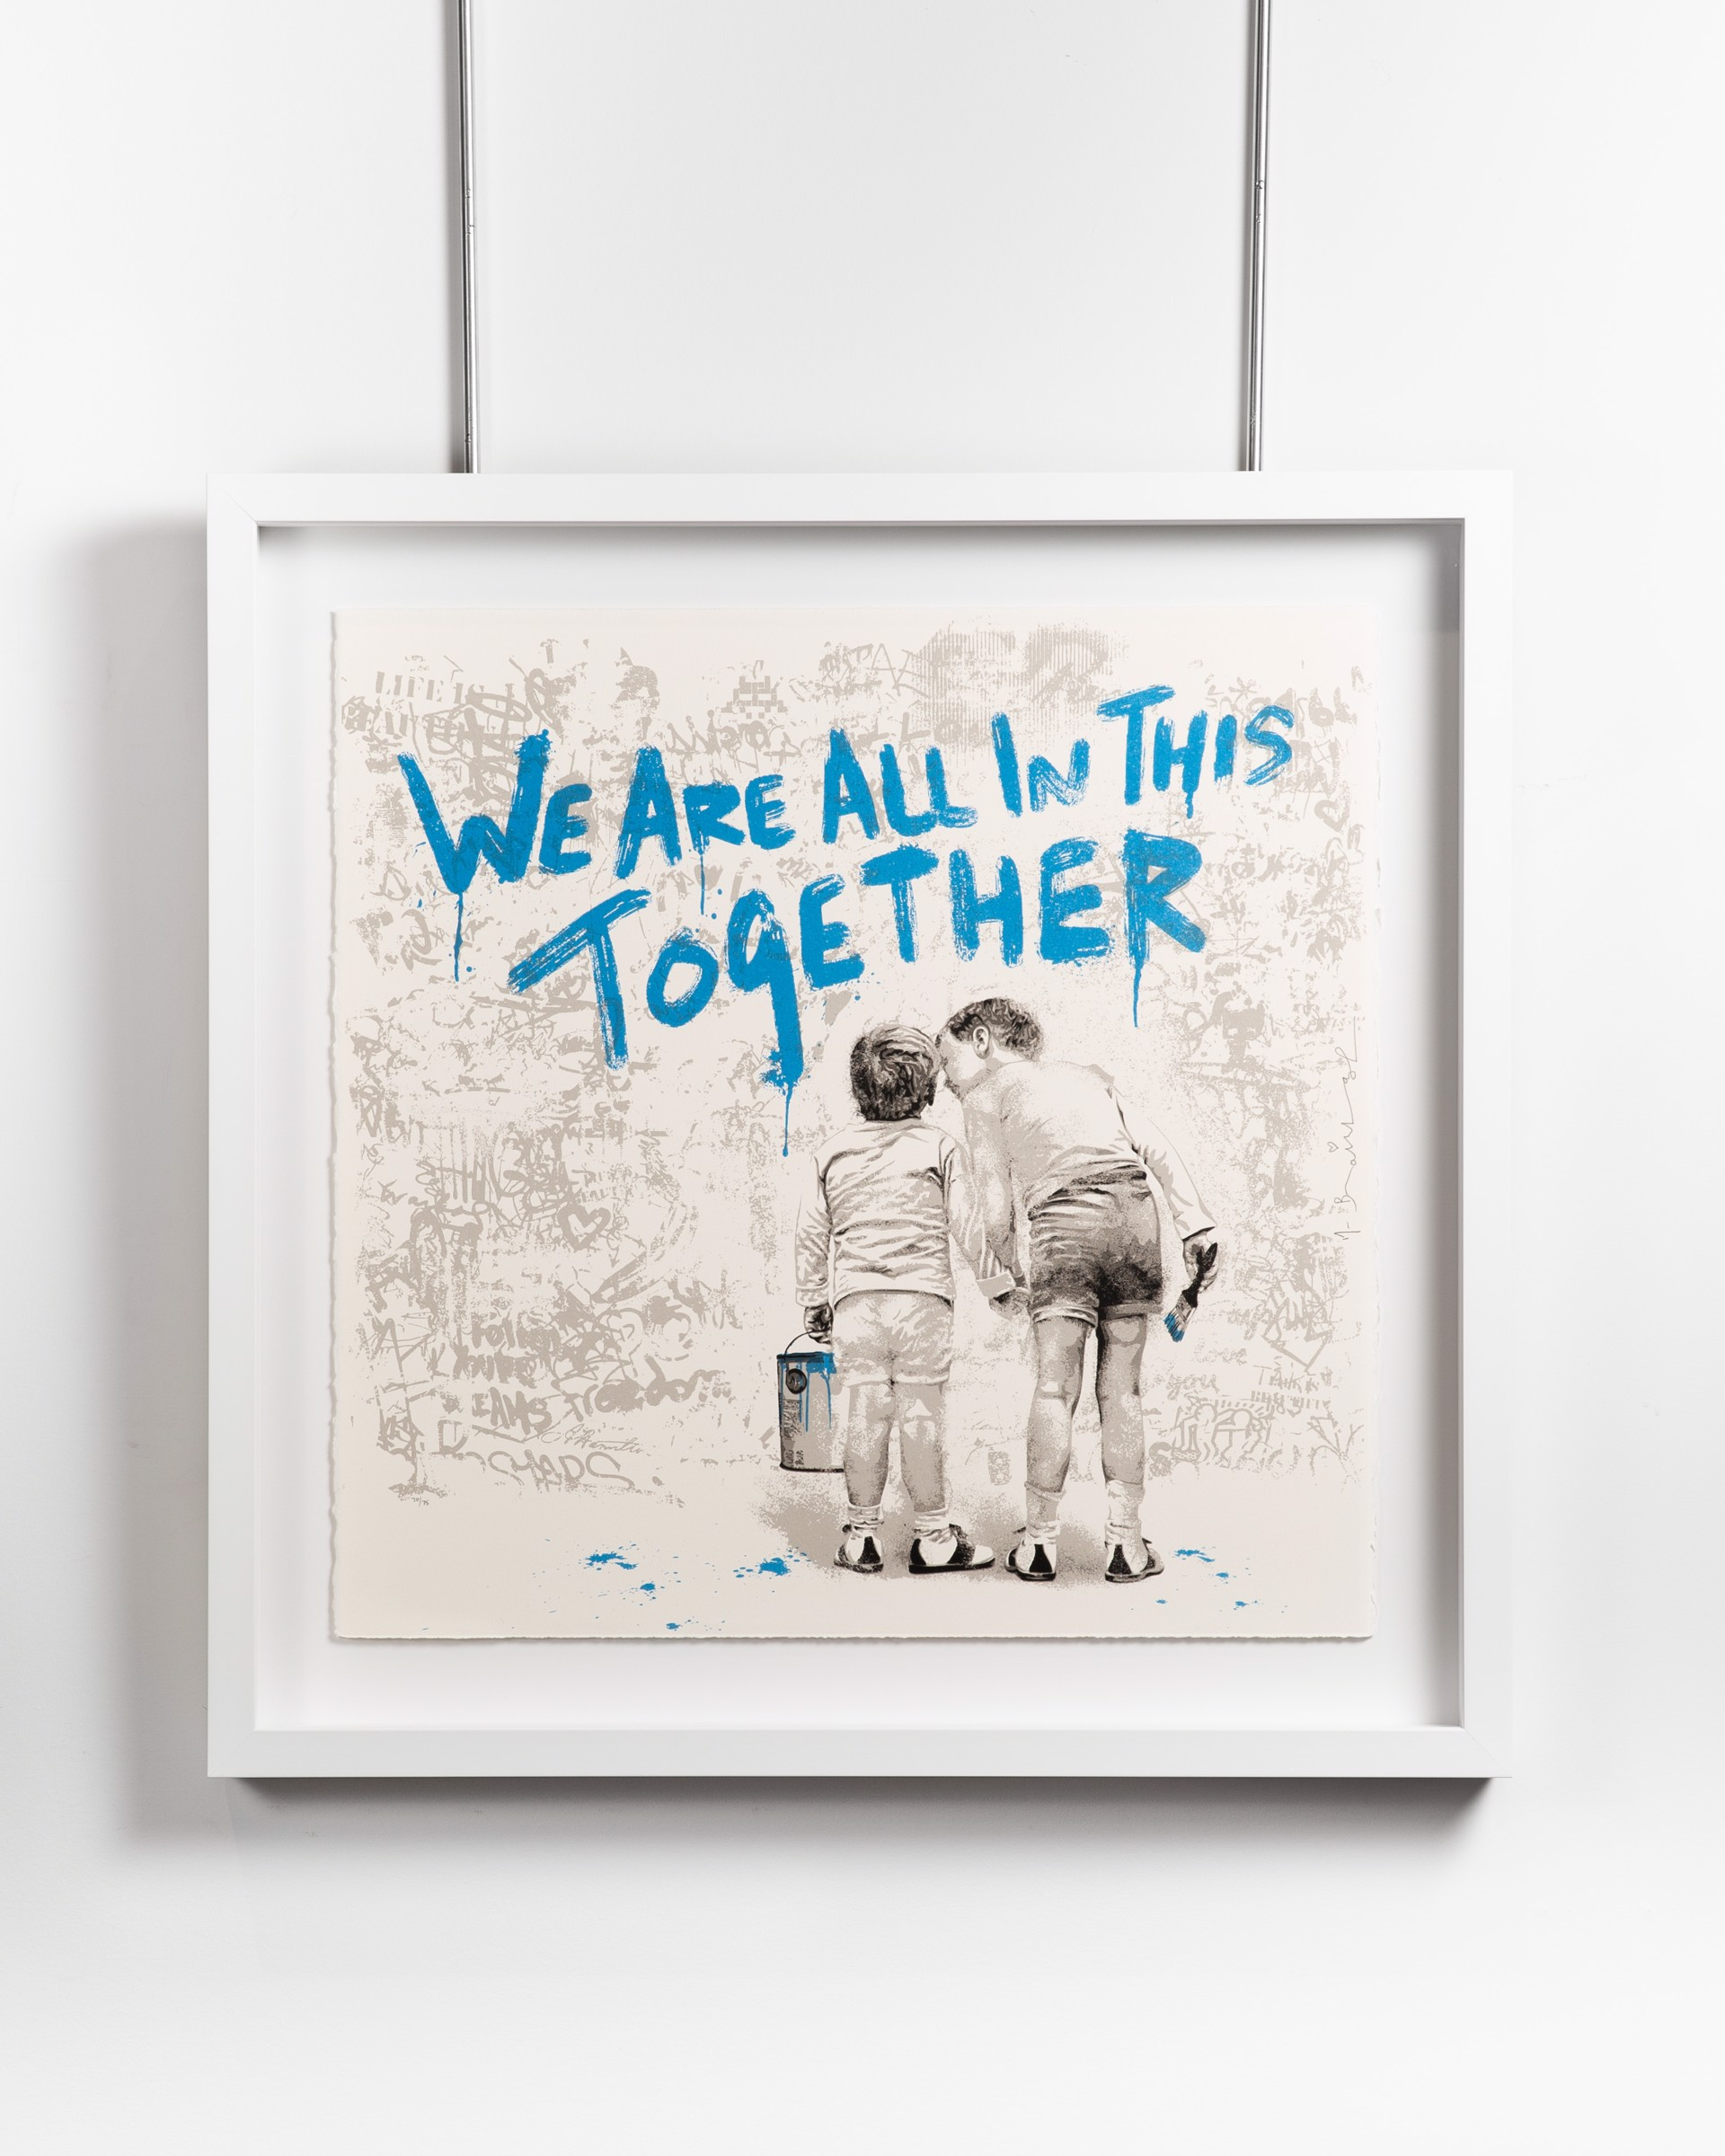 We are all in this together (blue) by Mr. Brainwash